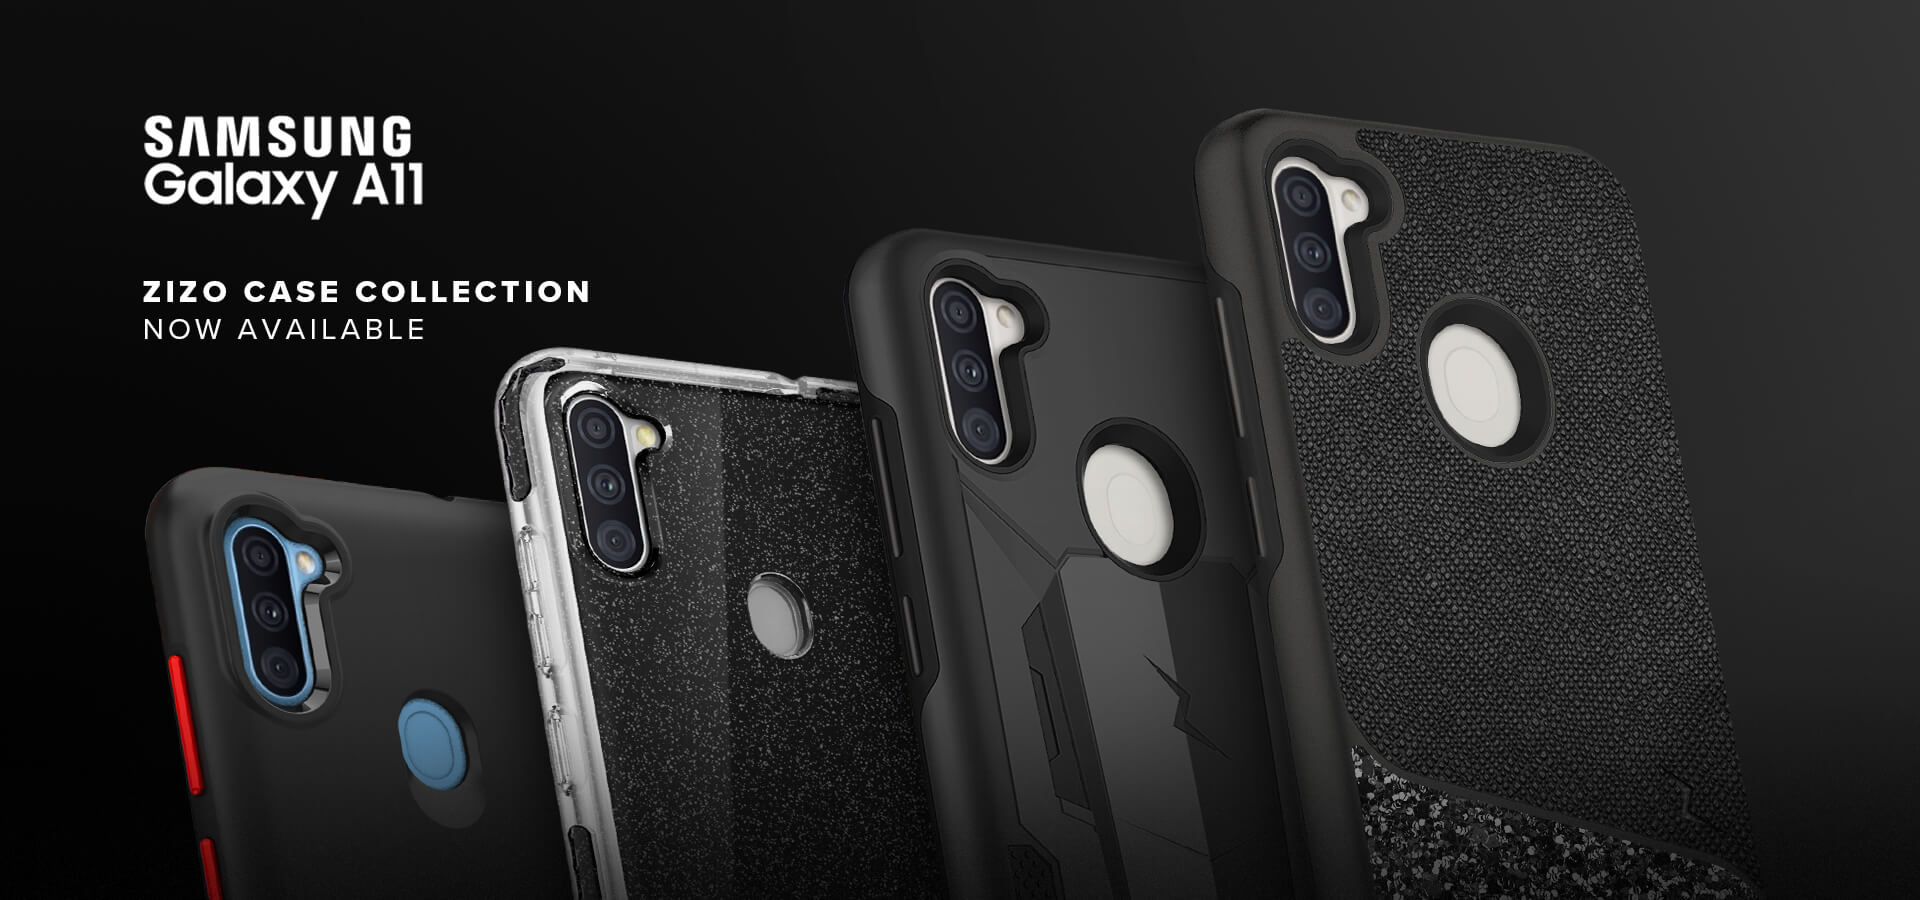 New Samsung Galaxy A11 Cases from ZIZO Wireless